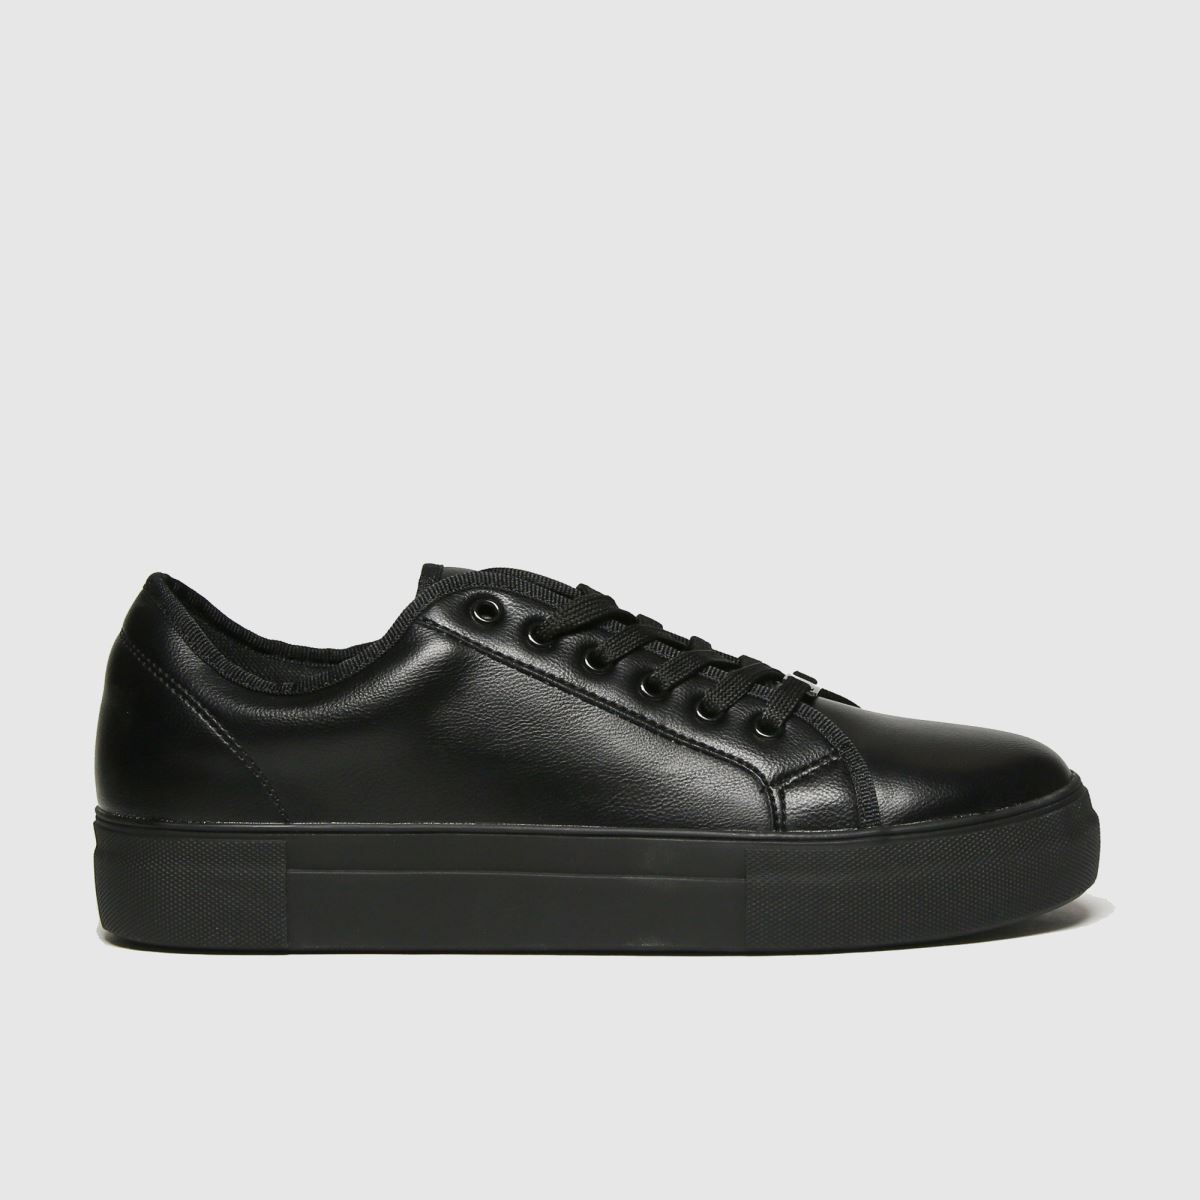 schuh Schuh Black Forever Black Lace Up Trainers